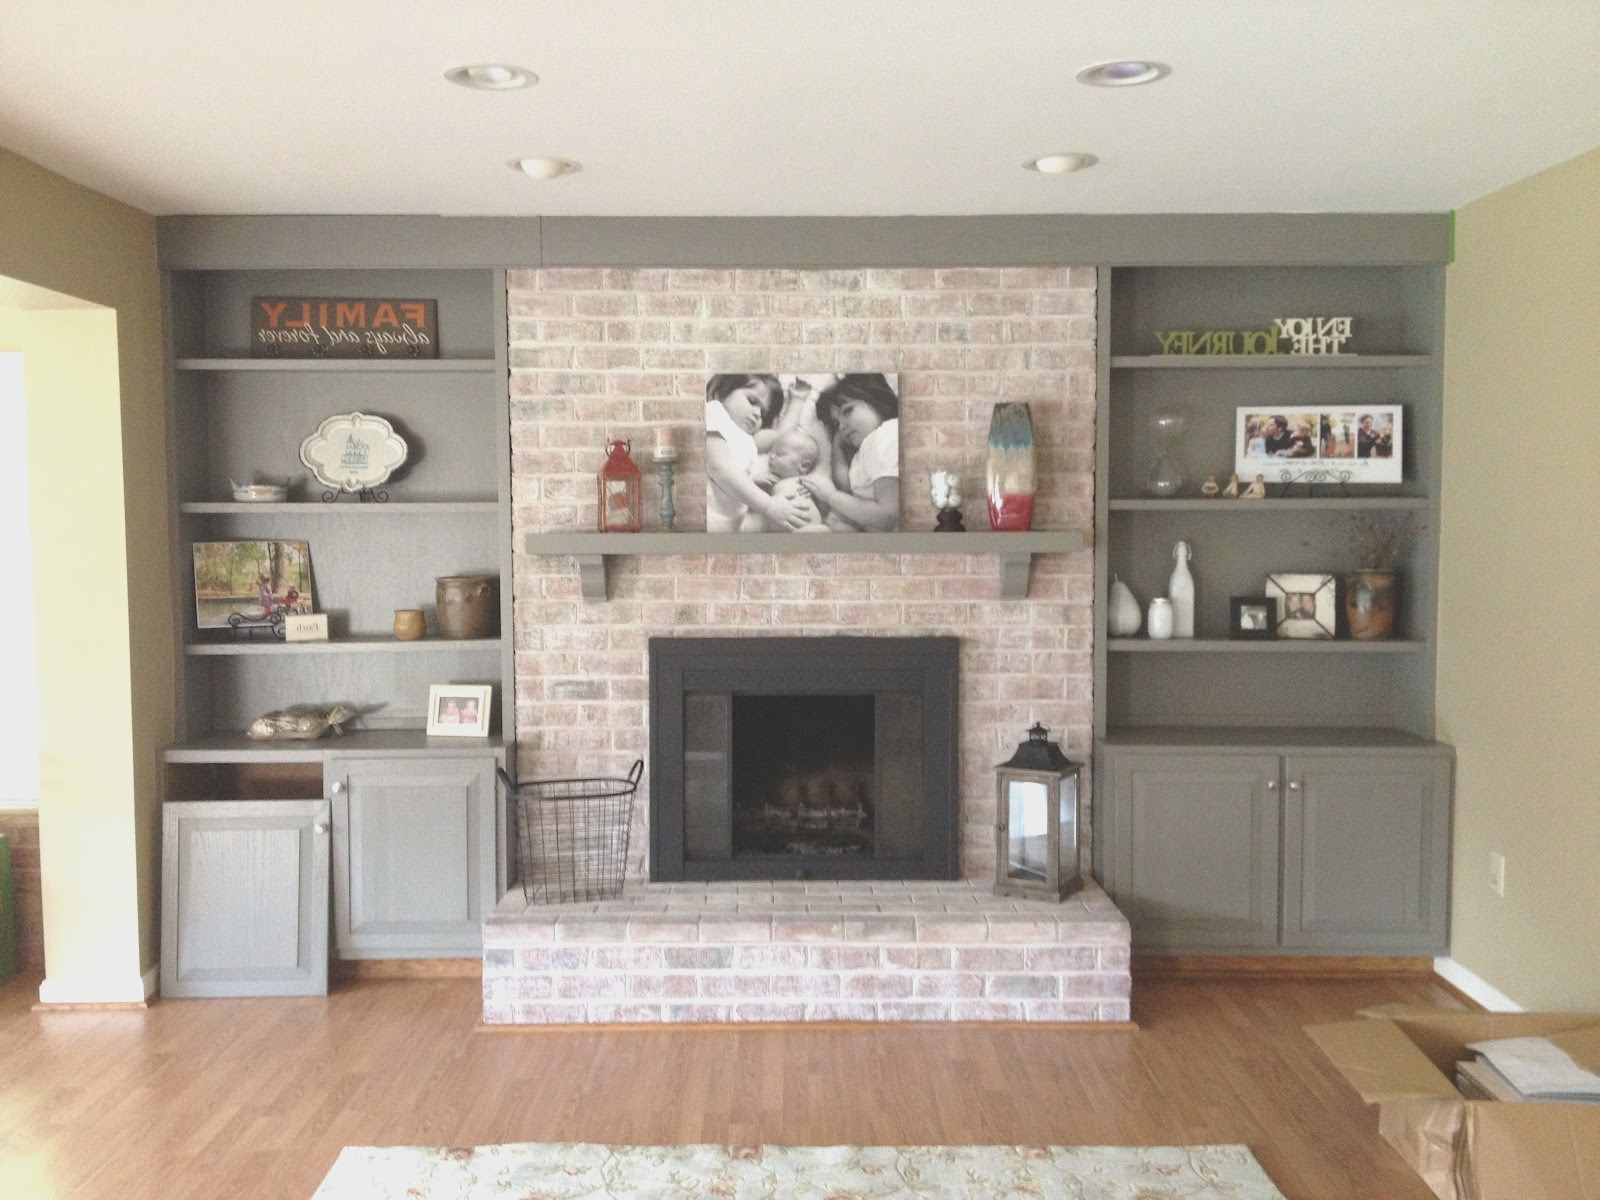 Marvelous Ideas Diy Built In Cabinets Around Fireplace Precious Free Plans Shelves Cost